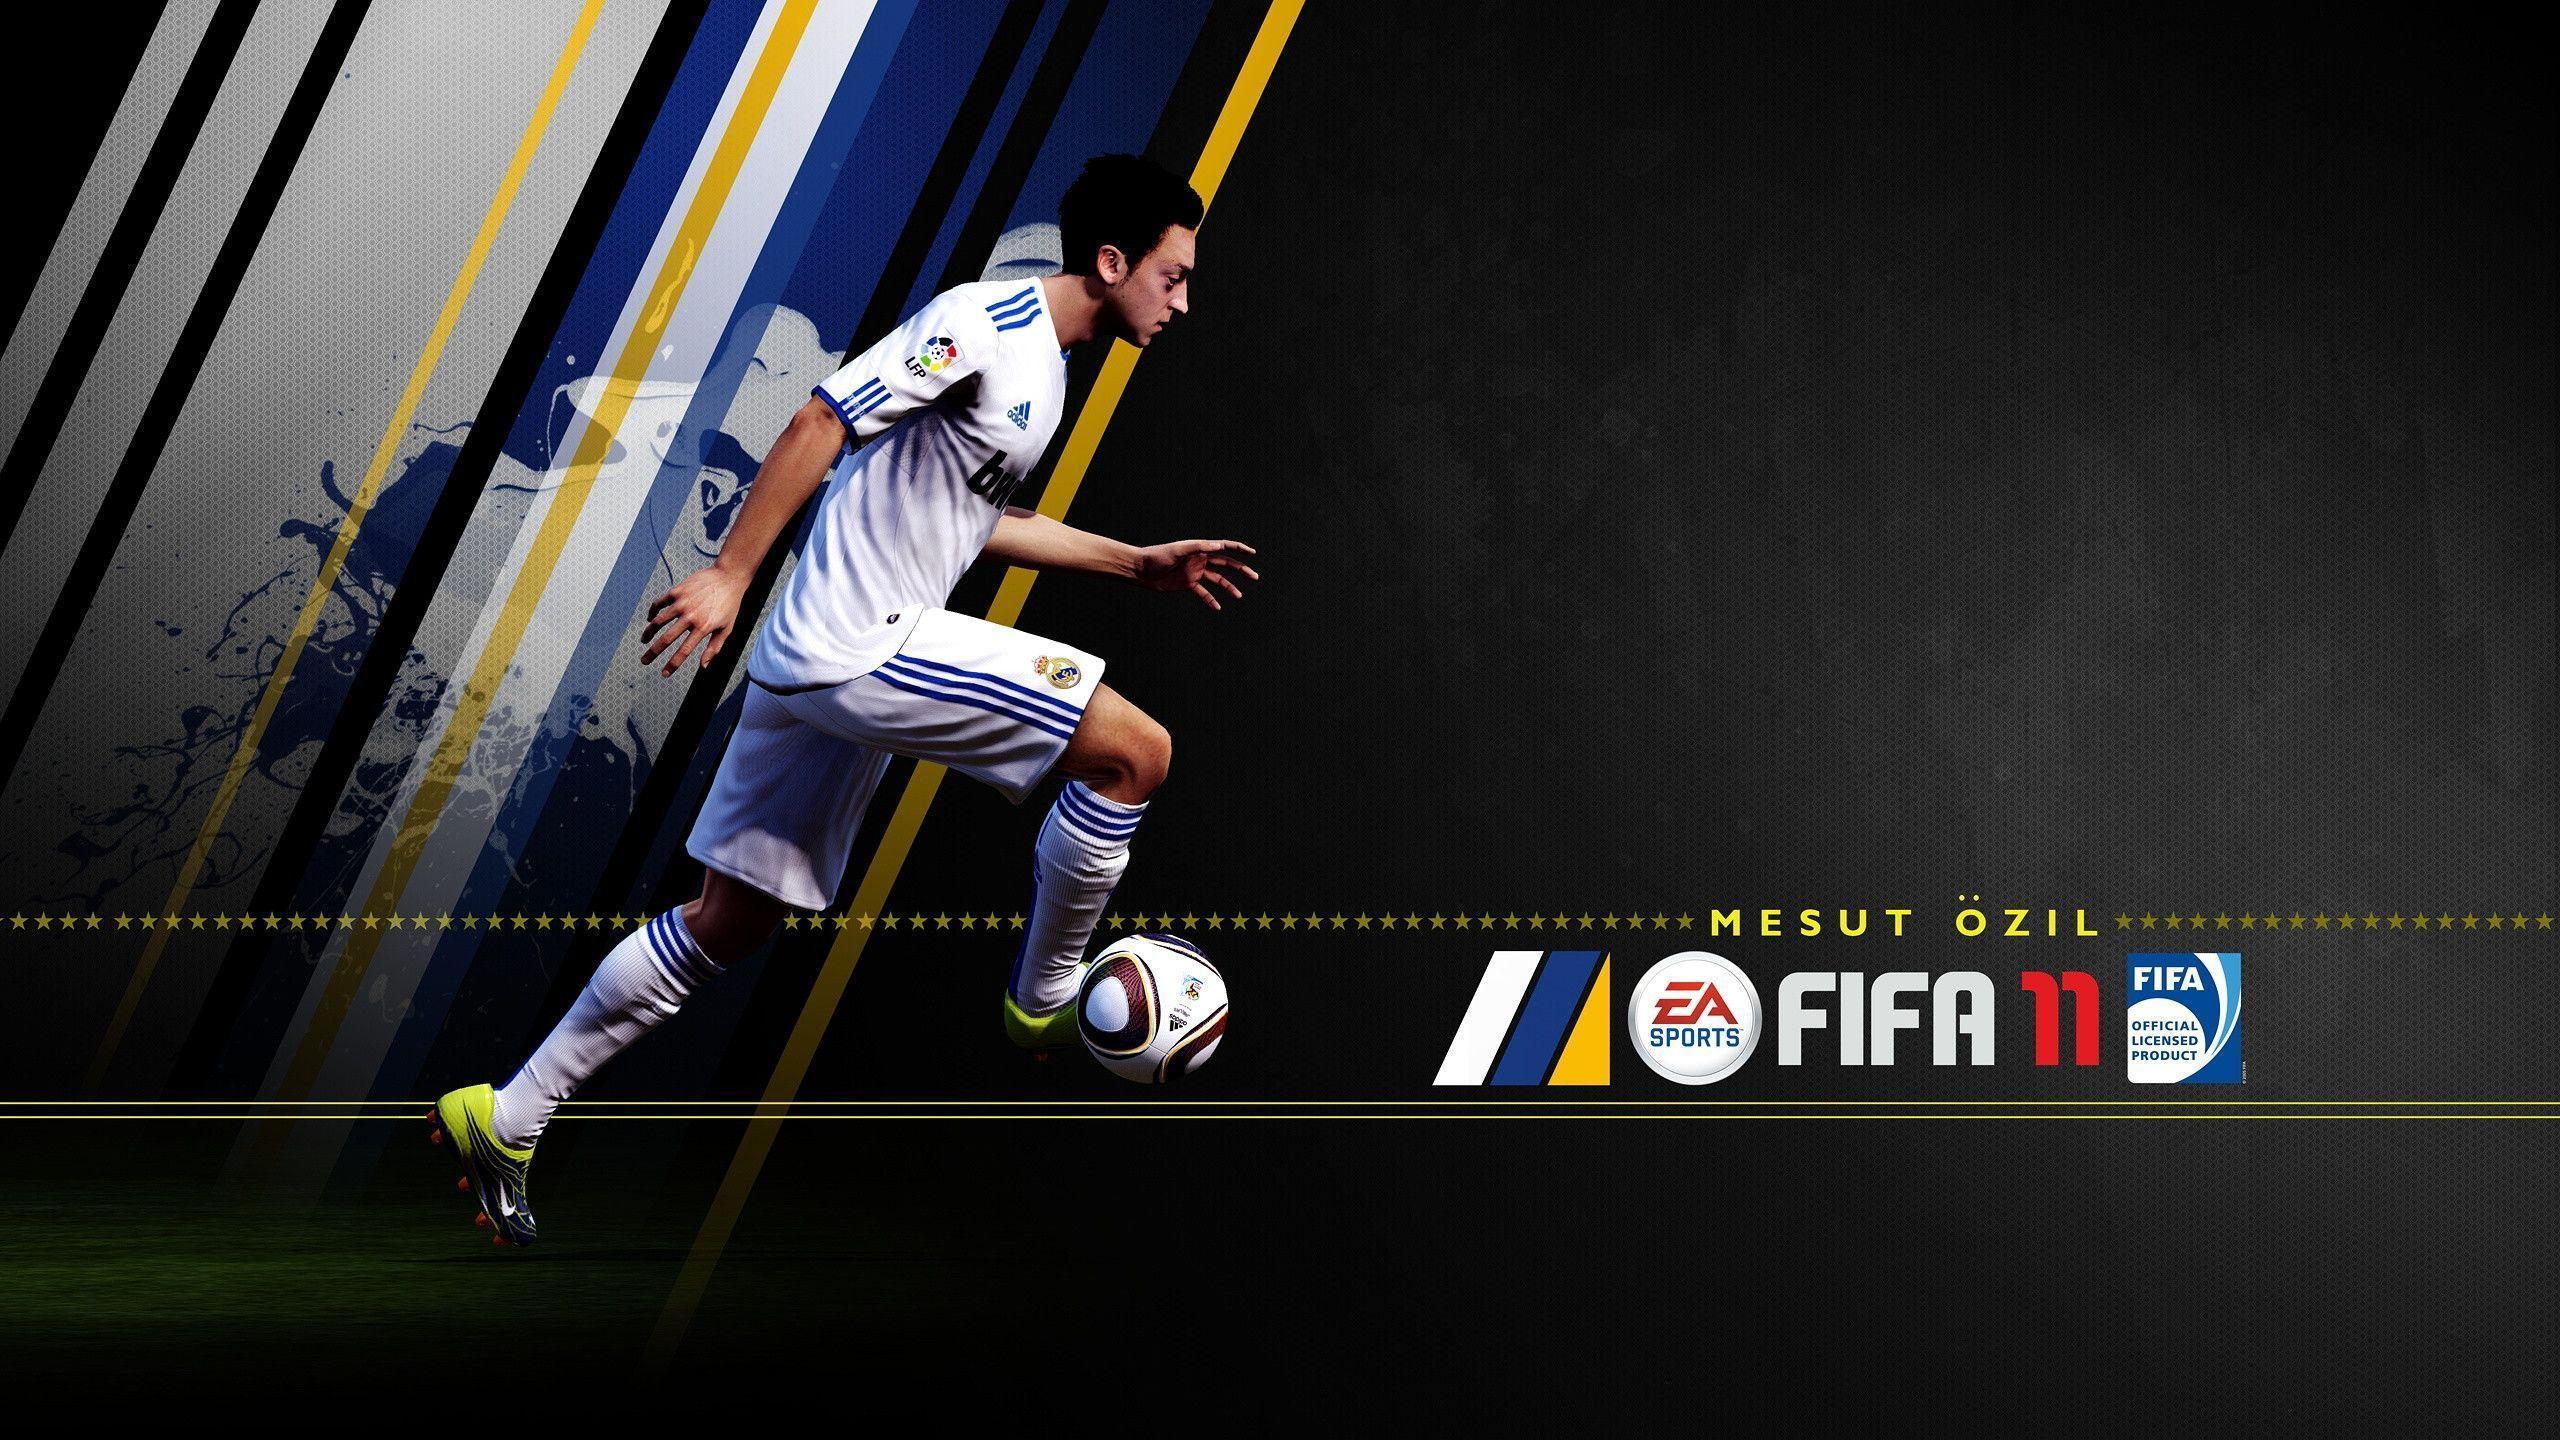 fifa wallpapers wallpaper cave